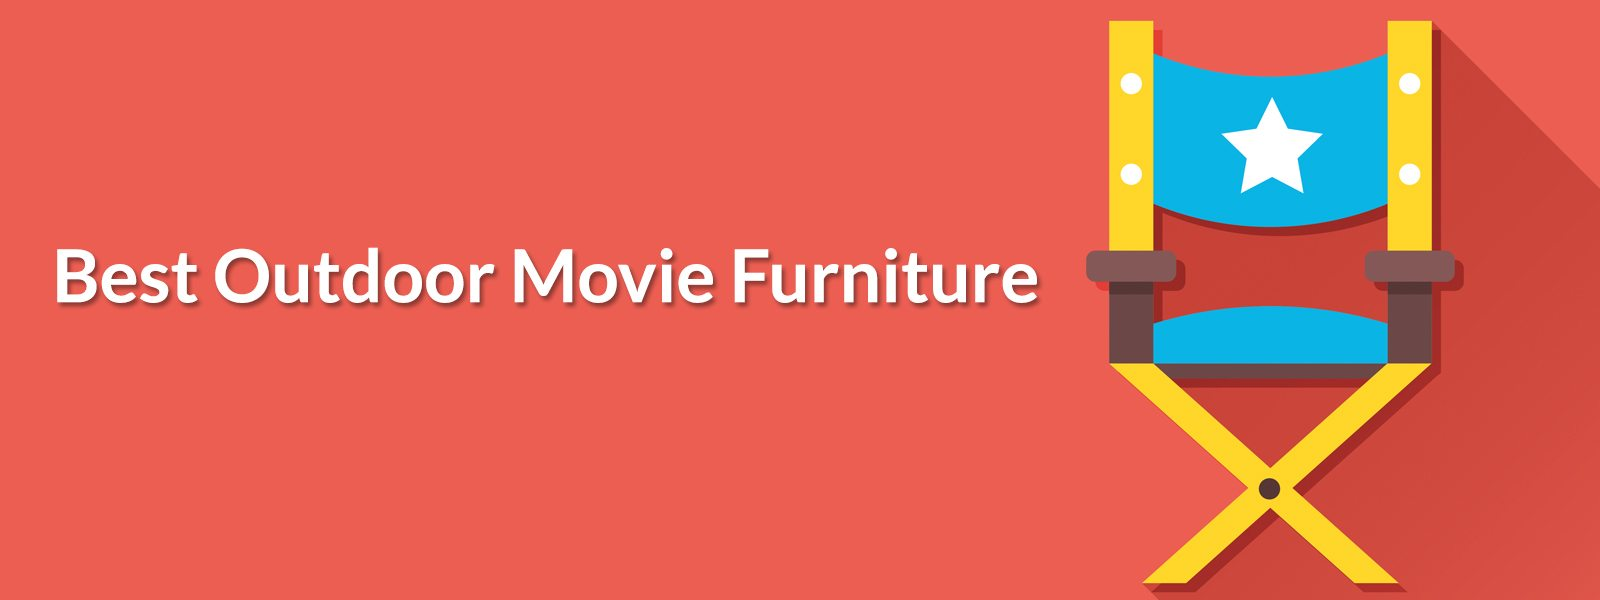 Best Outdoor Movie Furniture